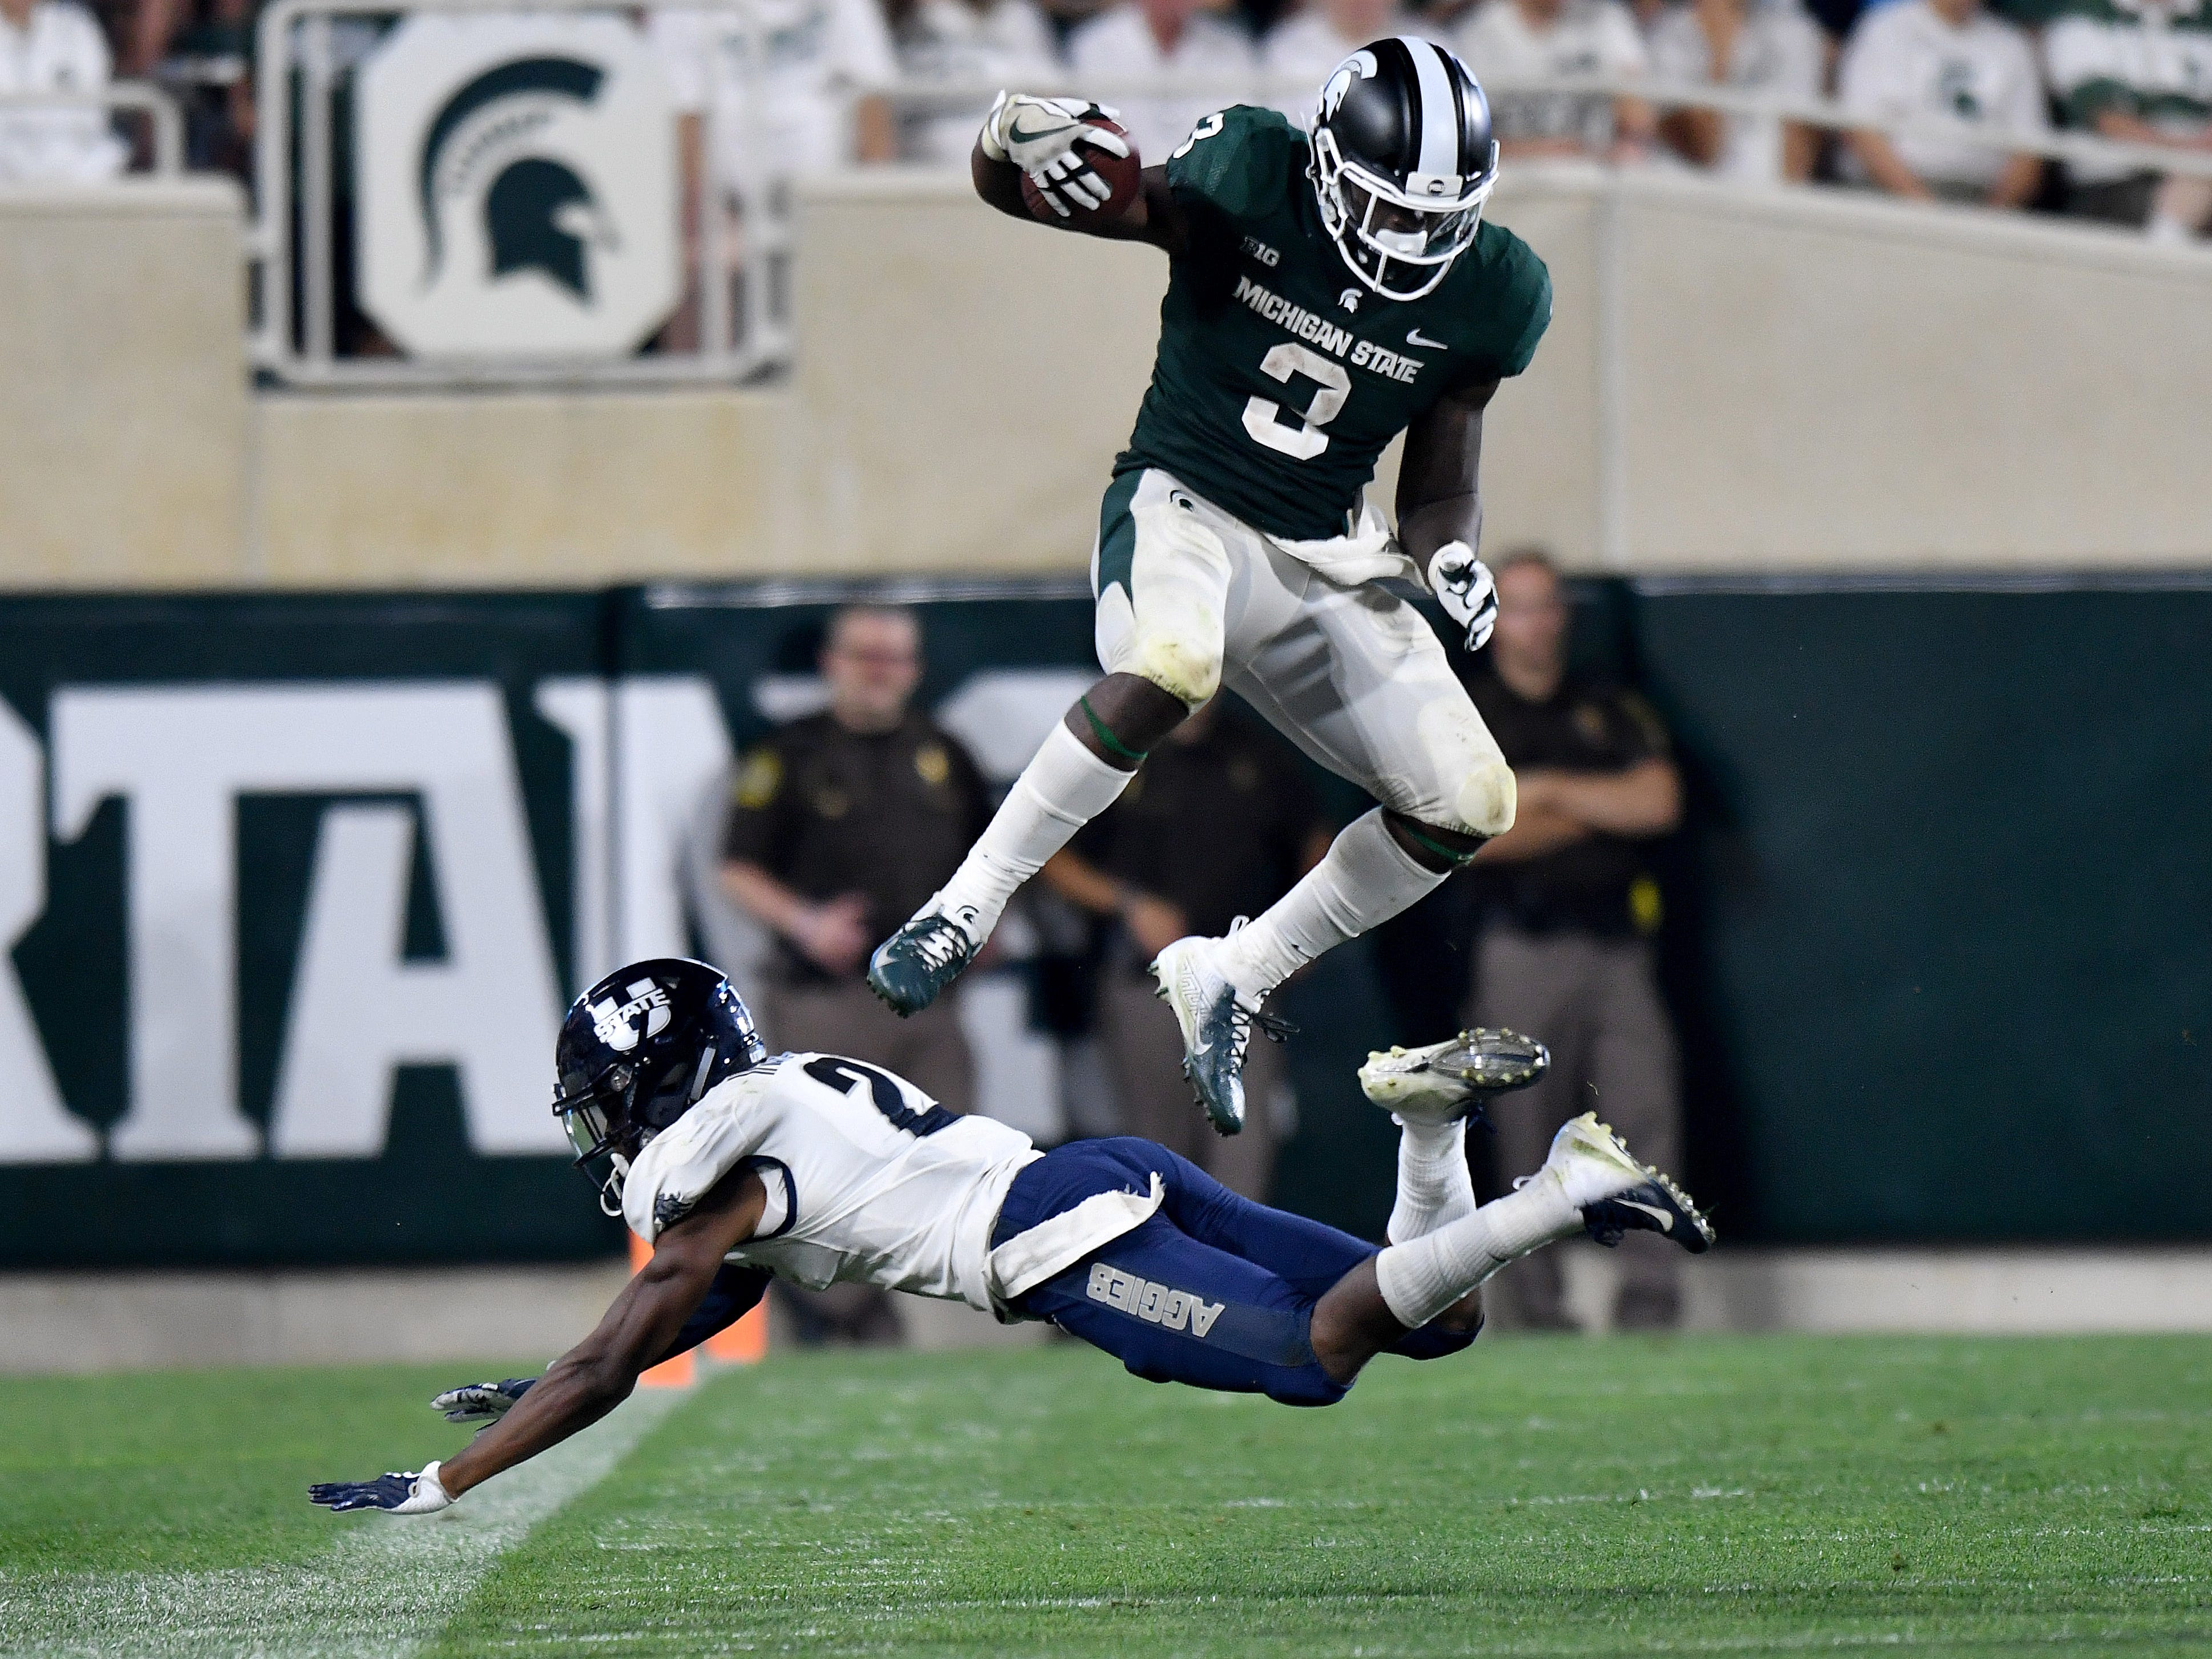 Michigan State running back  LJ Scott leaps over would-be Utah State tackler Ja'Marcus Ingram in the fourth quarter of a 38-31 MSU victory in their season opener at Spartan Stadium in East Lansing on Friday, Aug 31, 2018.